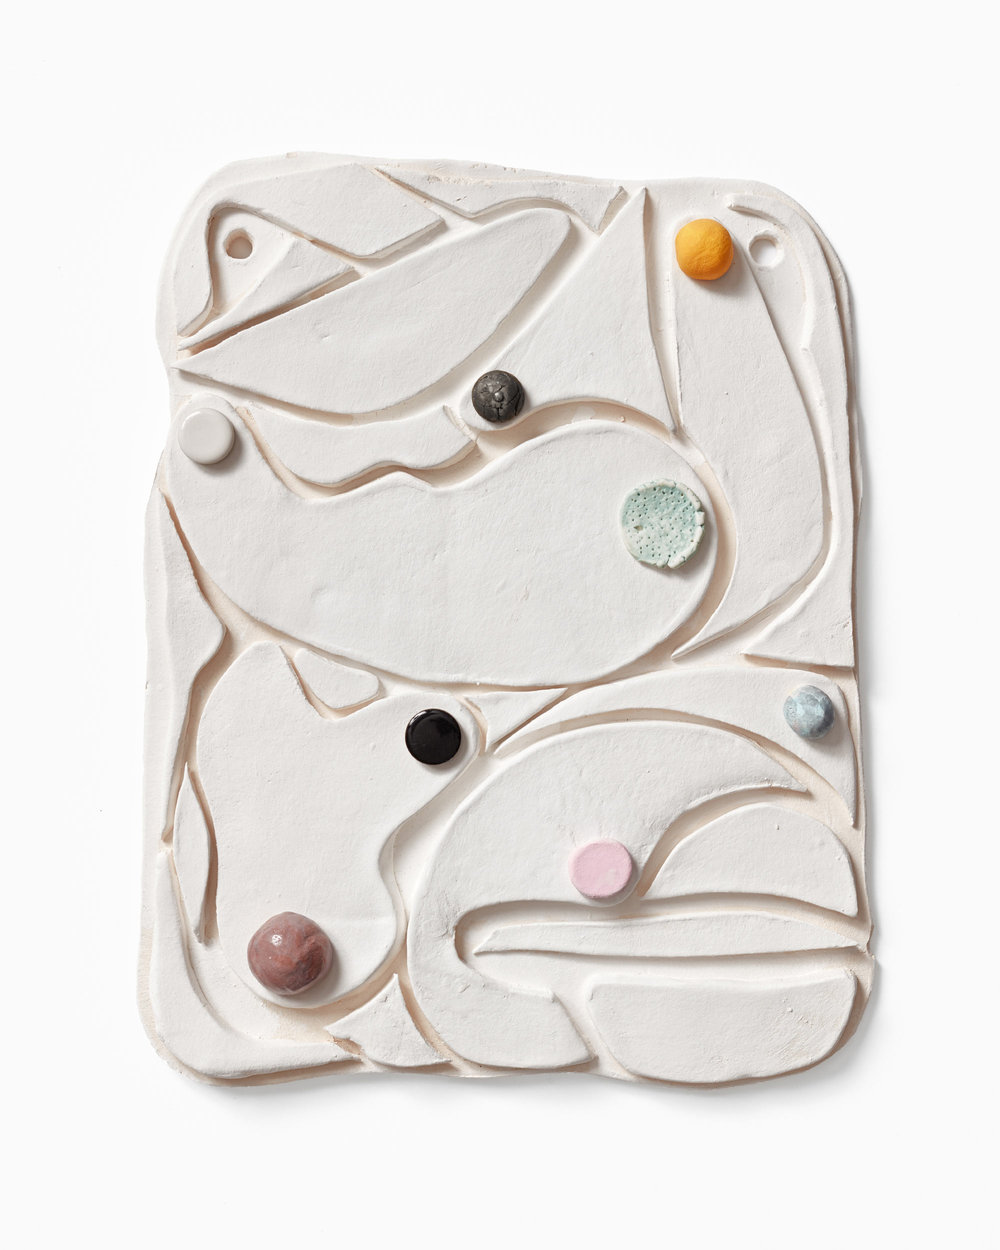 Tai Snaith,  Unconscious Collection , 2016, porcelain, glaze, gouache, watercolour, glaze and circular ceramic tile, 31 x 25cm